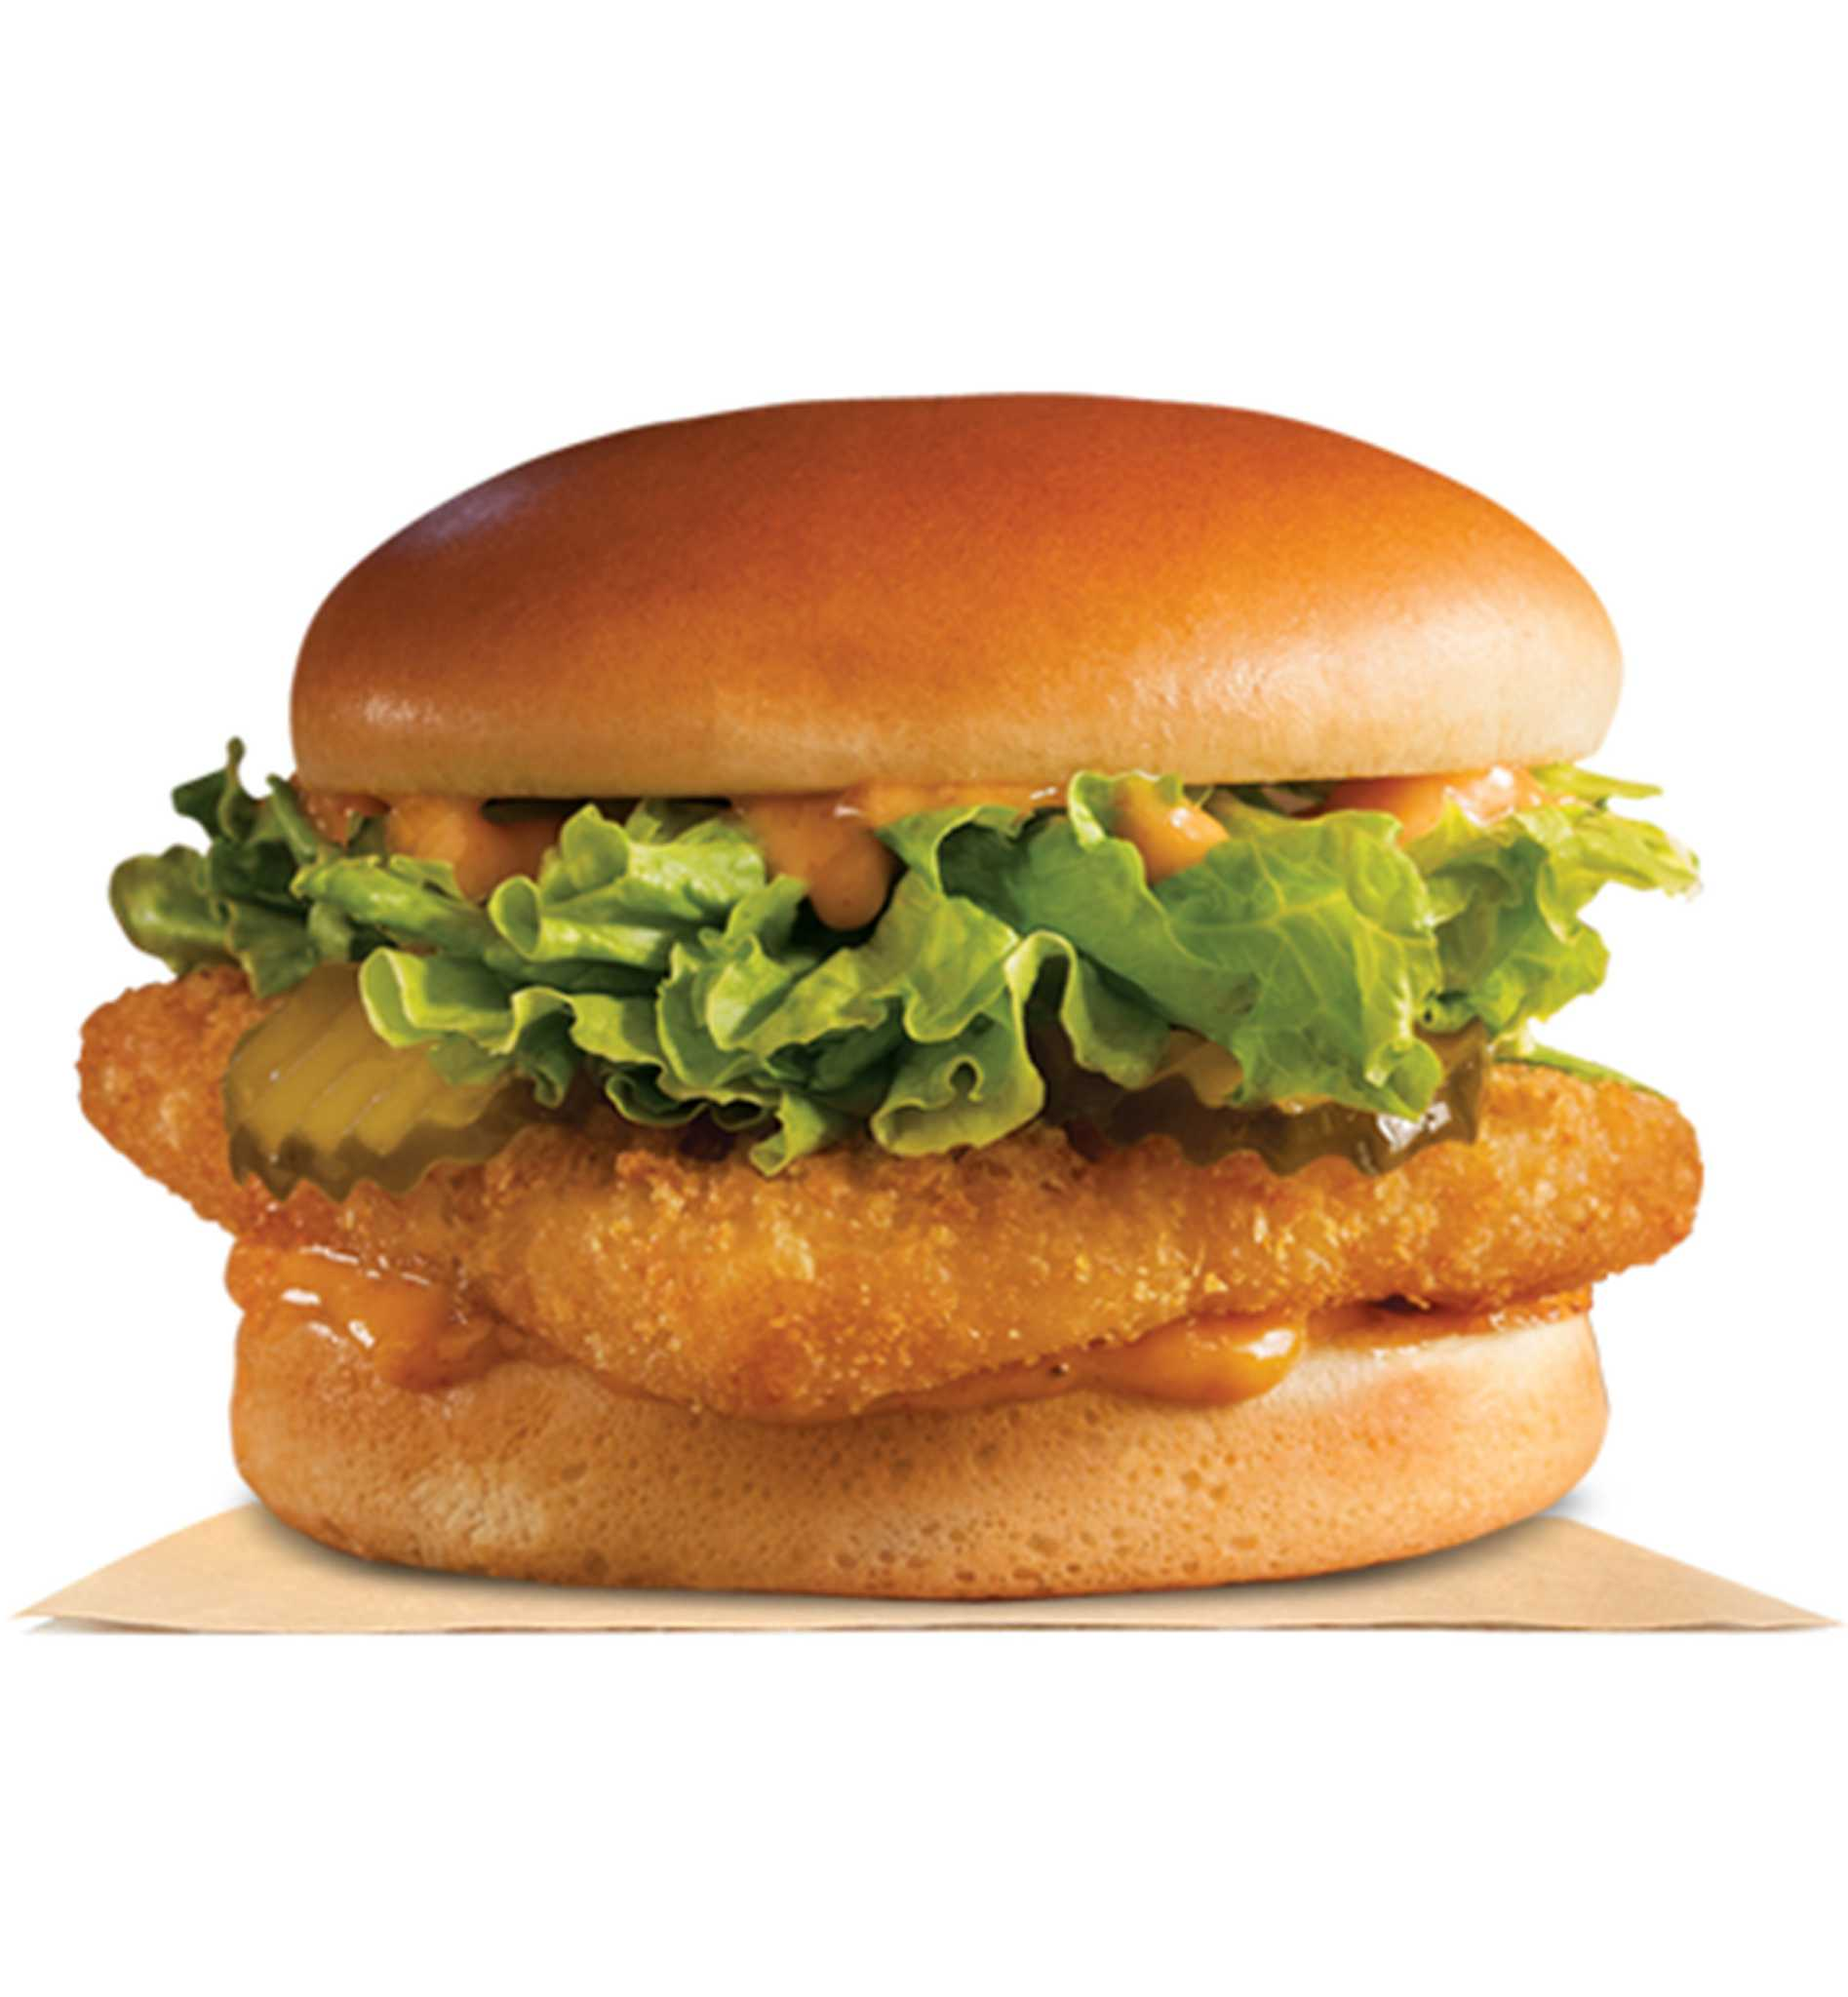 Bk 39 s big fish sandwich gets a touch spicy houston chronicle for Good fish sandwich near me